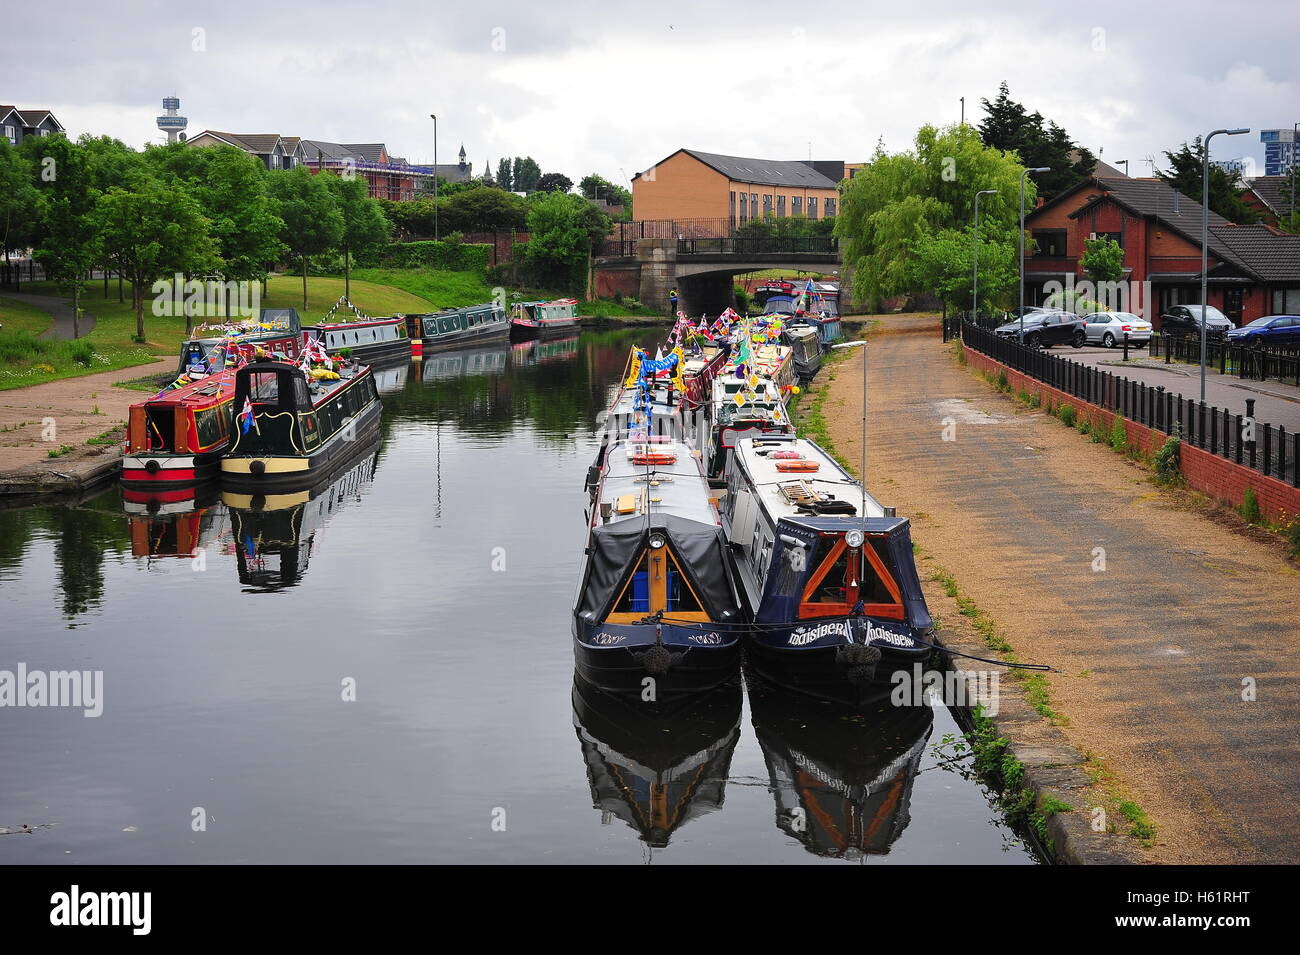 Narrow boats on the Liverpool stretch of the Leeds Liverpool Canal. - Stock Image